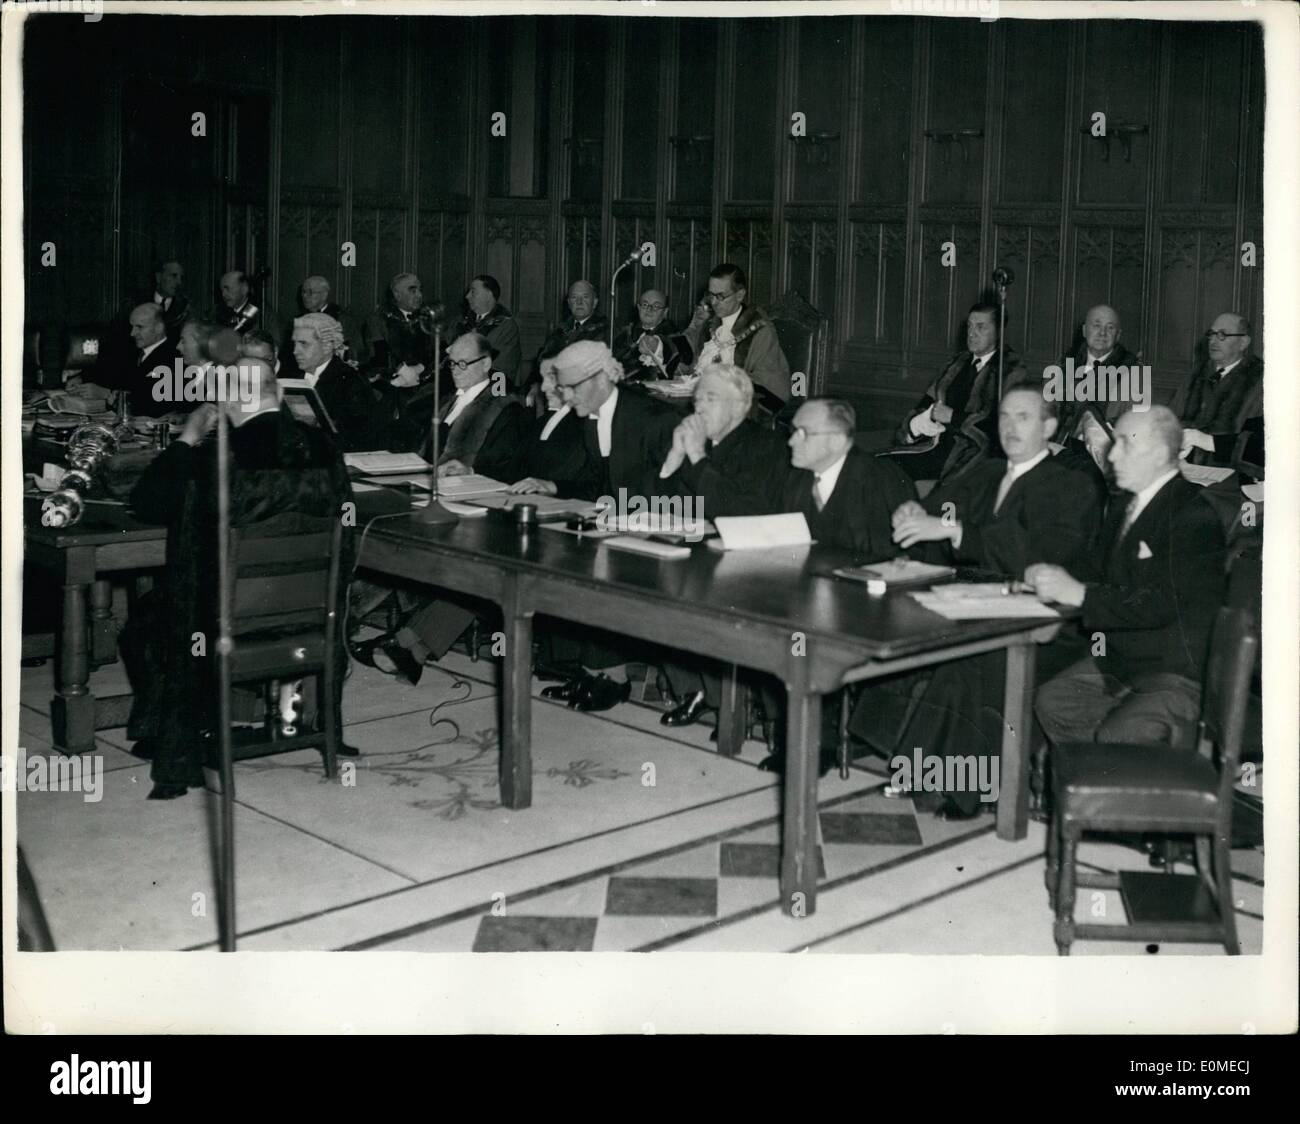 Nov. 11, 1954 - Court of Common Council's Meeting In The Restored Guildhall. The Court of Common Council's meeting which is the - Stock Image